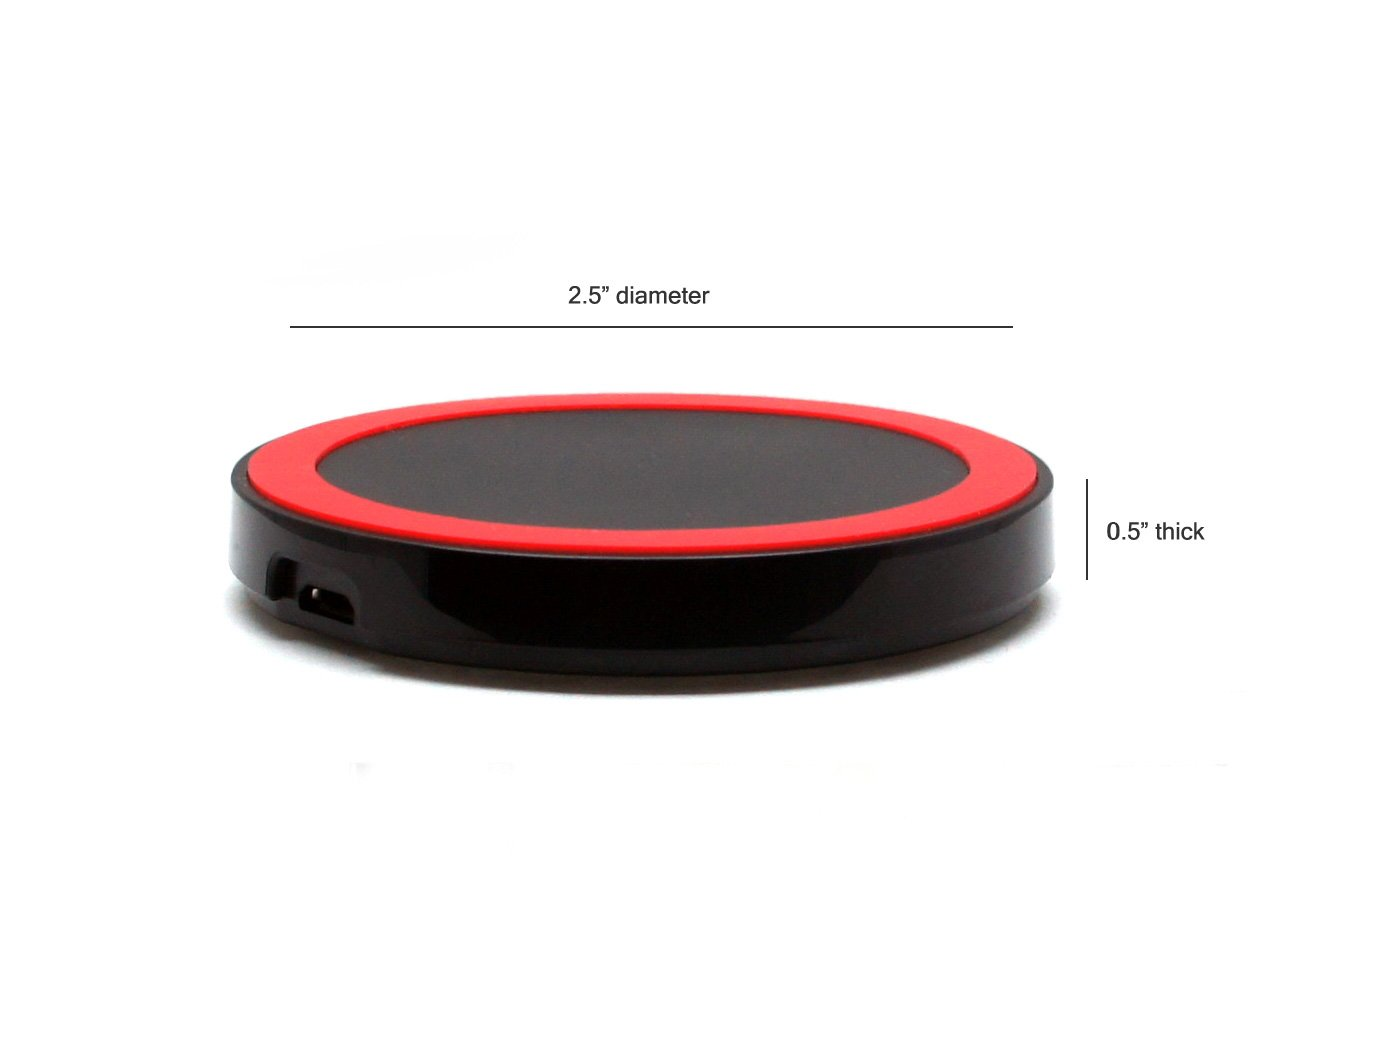 case reviewpowerbot qi enabled wireless charger inductive charging pad station for samsung. Black Bedroom Furniture Sets. Home Design Ideas